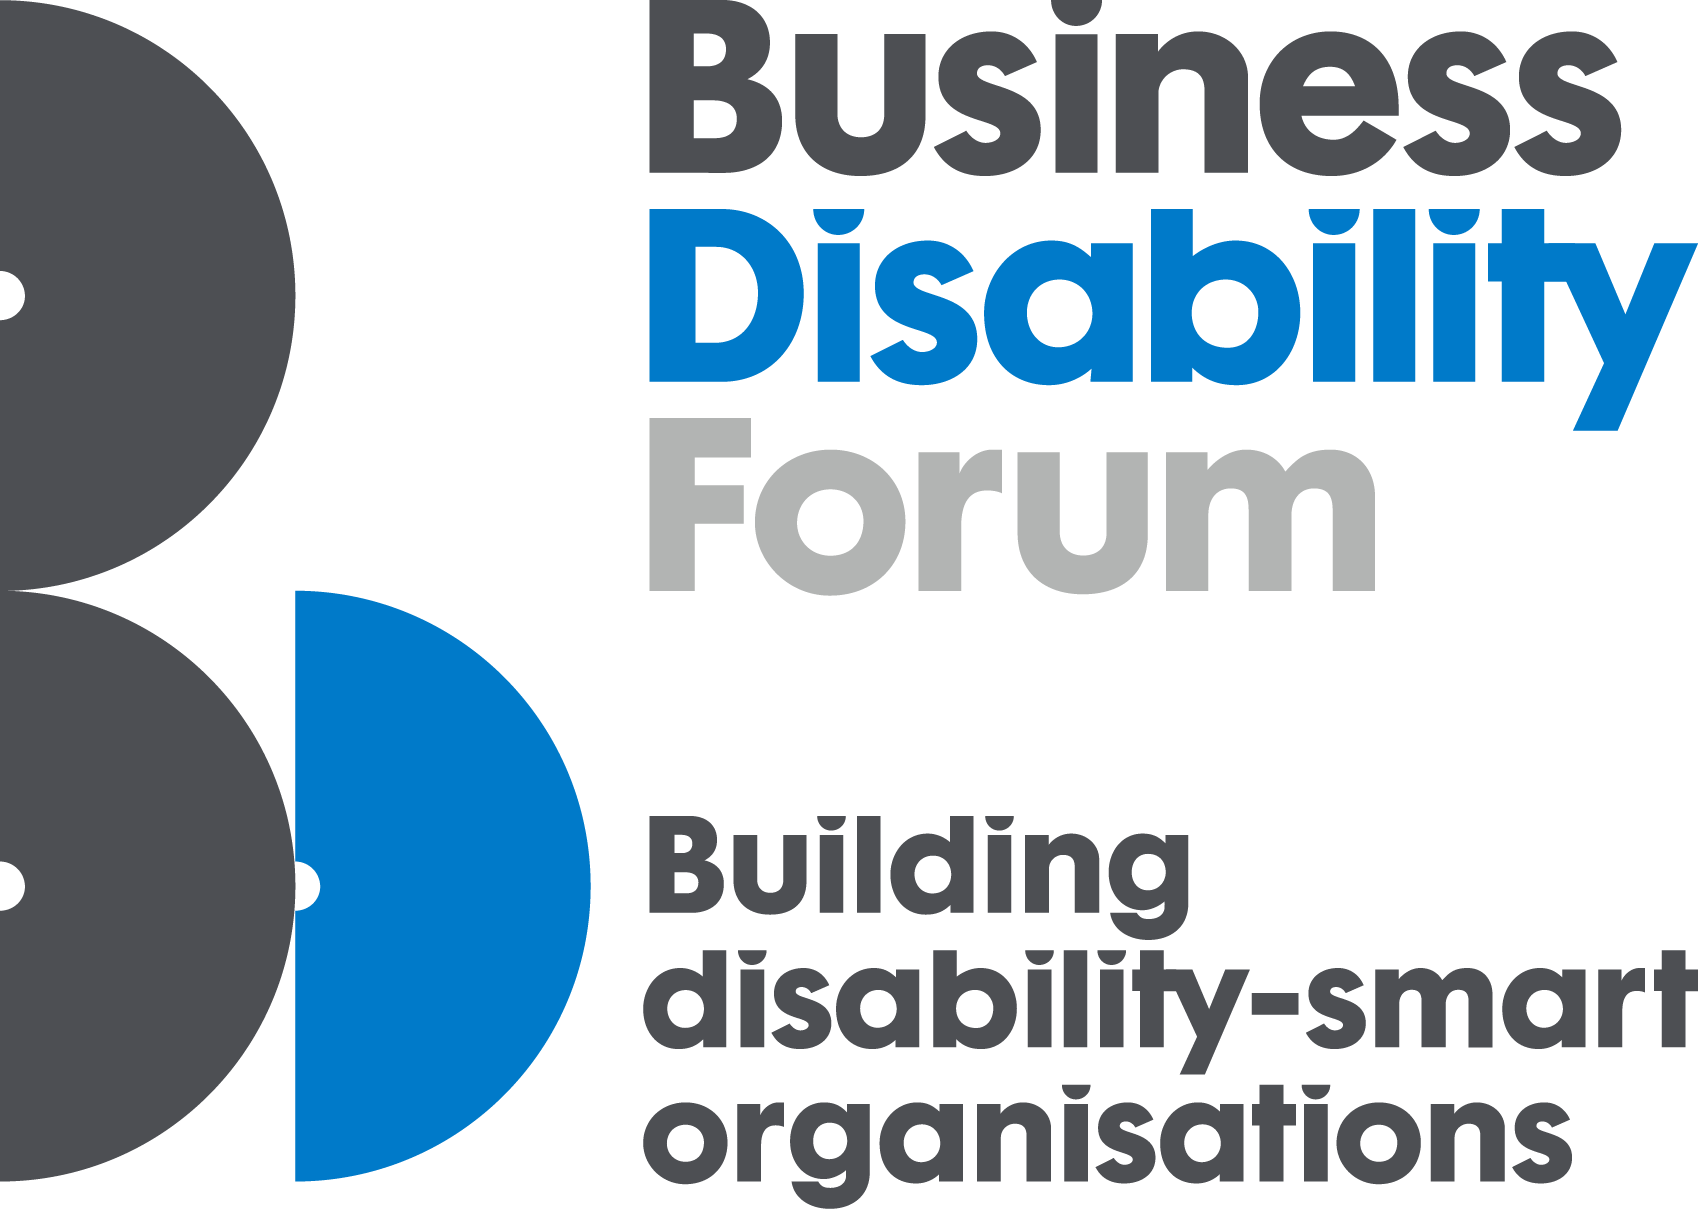 Business Disability Forum